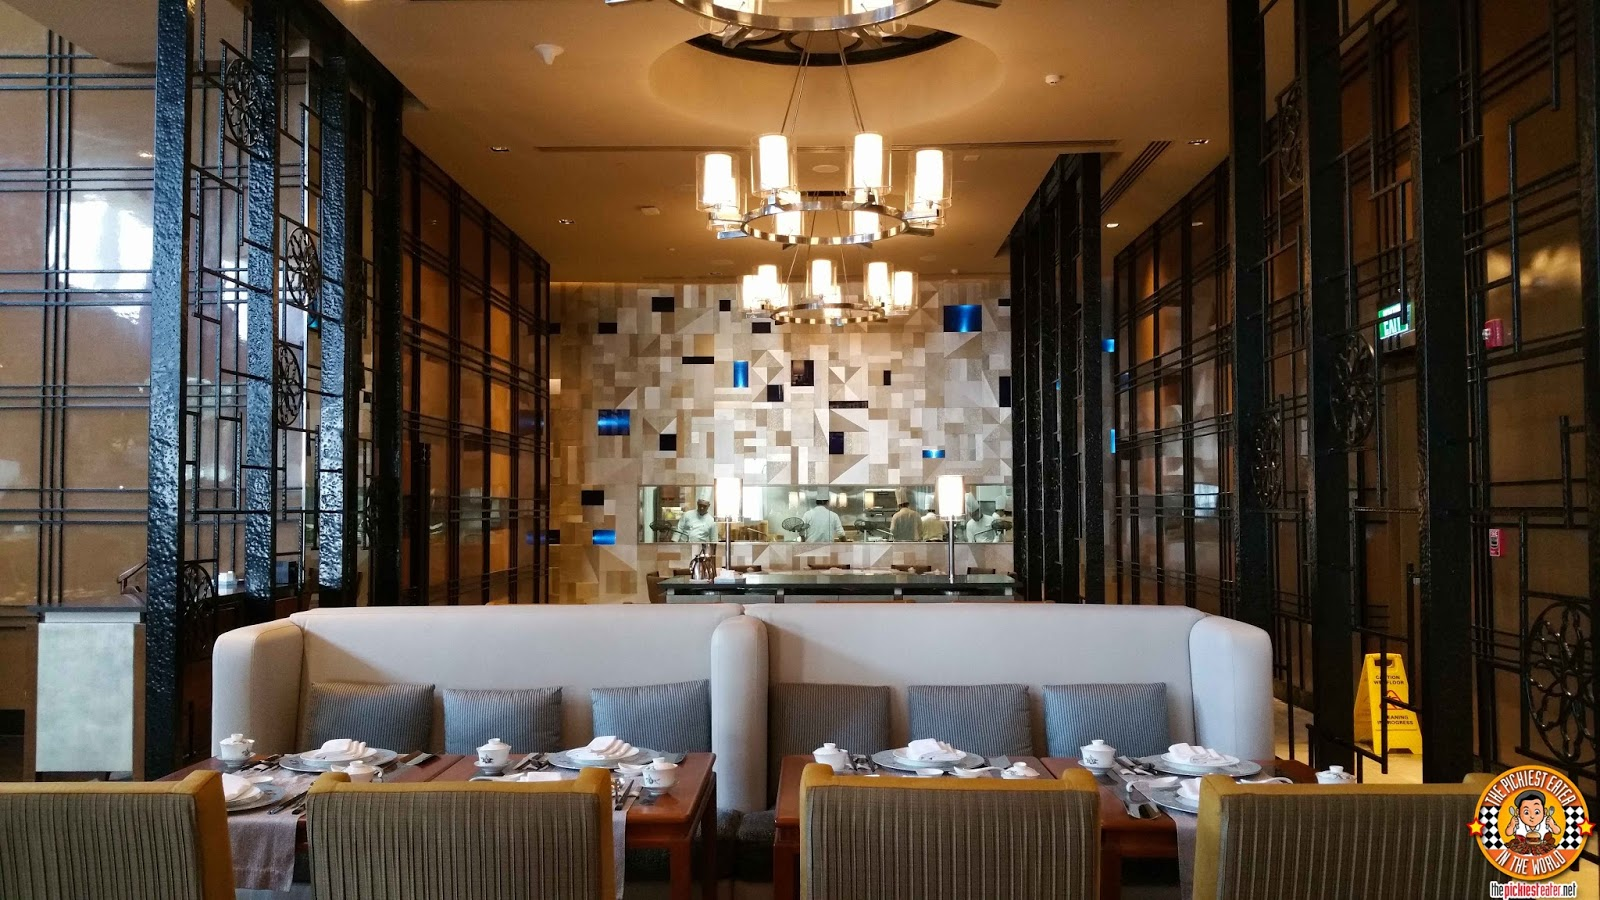 upon entering the restaurant it is apparent that the conrad hotel manila group spared no expense in creating a lavish and elegant dining space